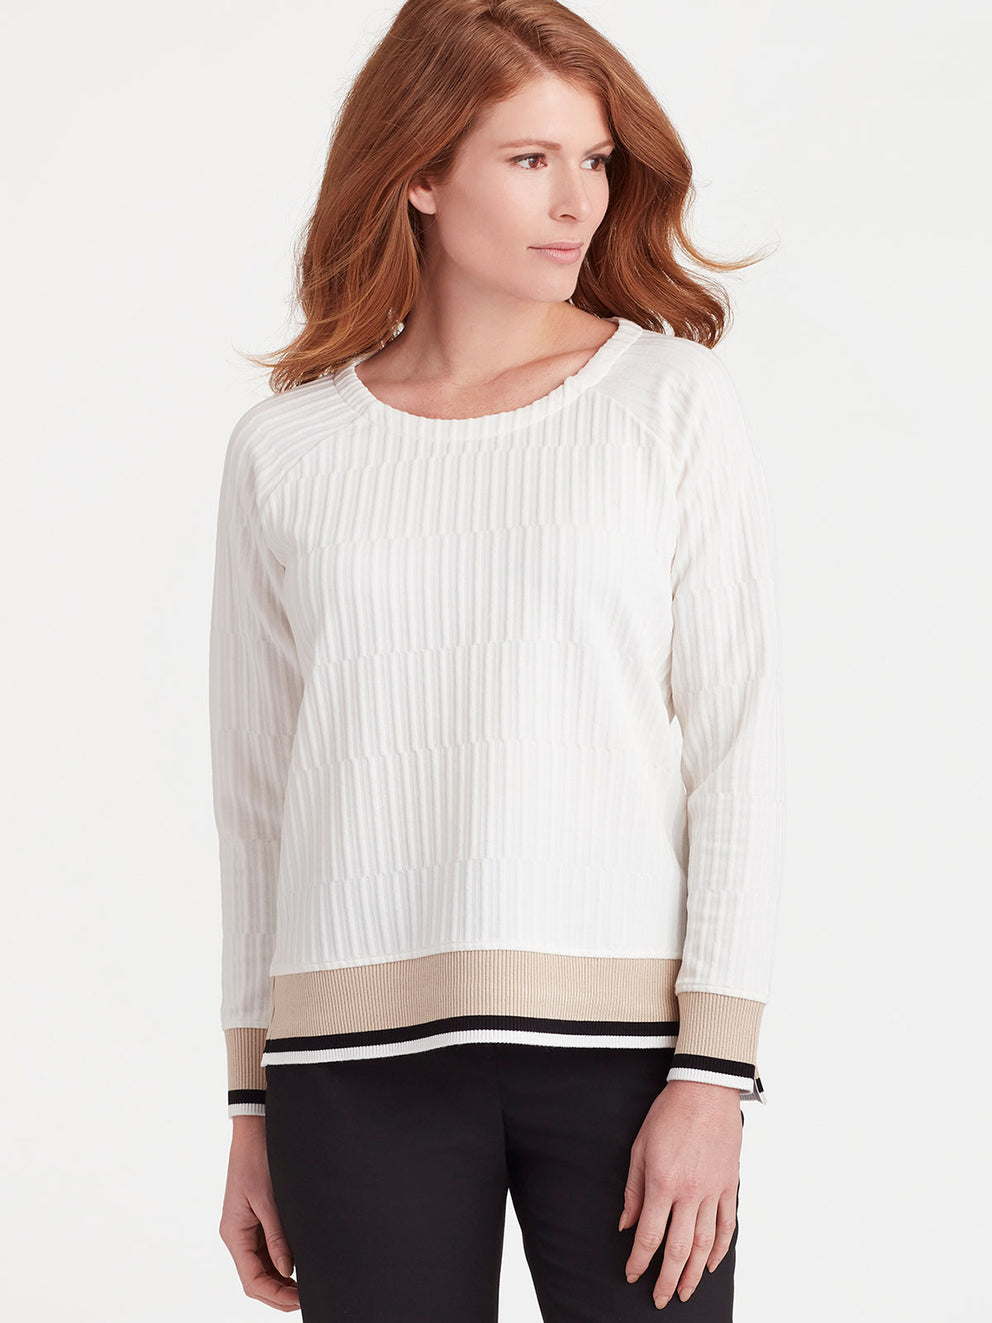 The Jones New York Textured Knit Pullover in color Ivory - Image Position 1